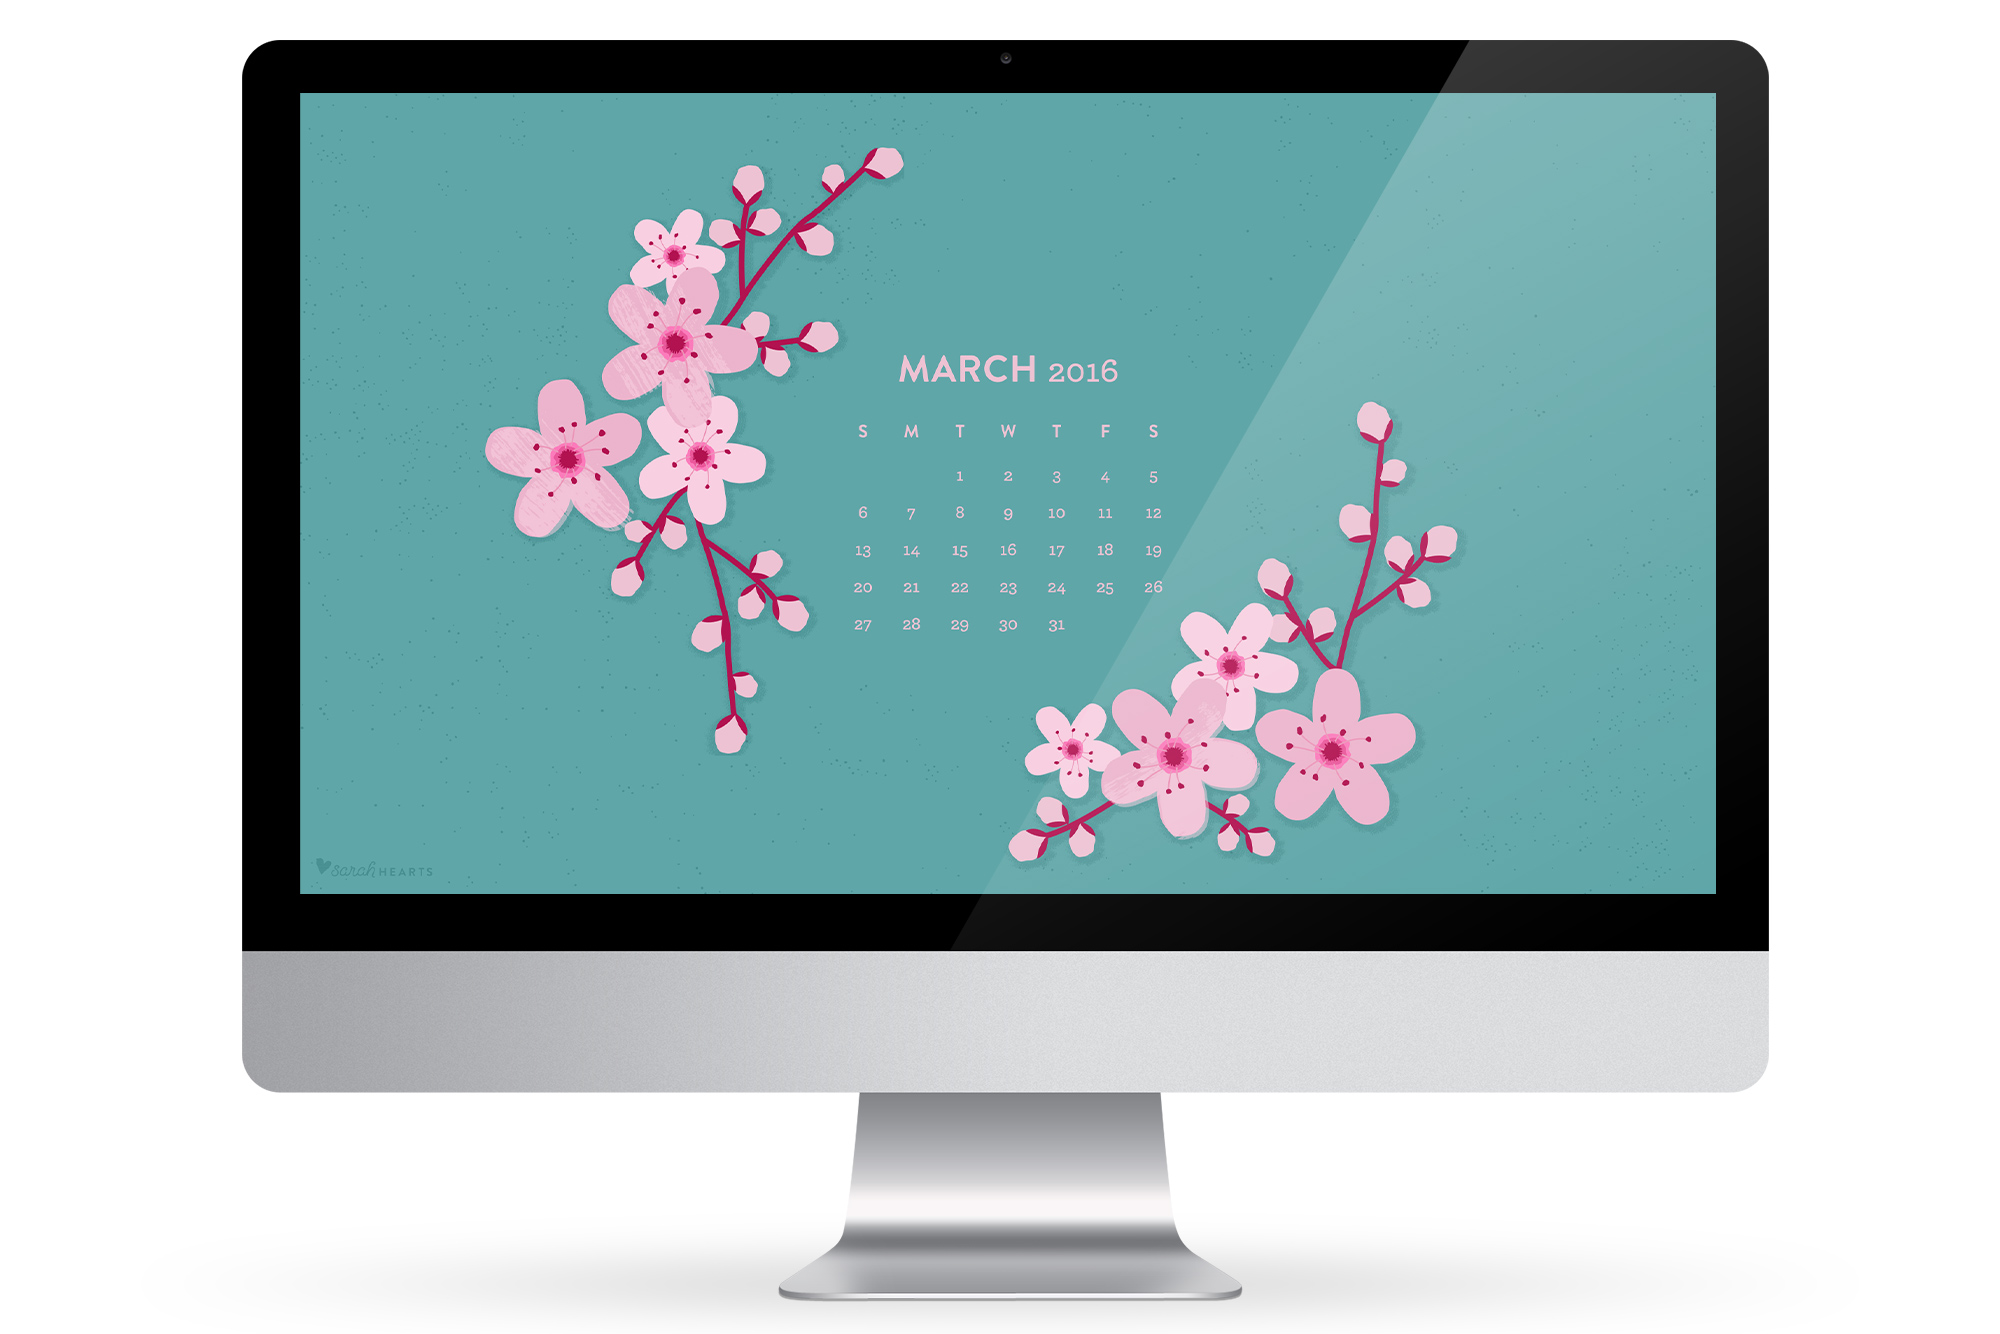 45] March 2016 Calendar Wallpaper on WallpaperSafari 2000x1334